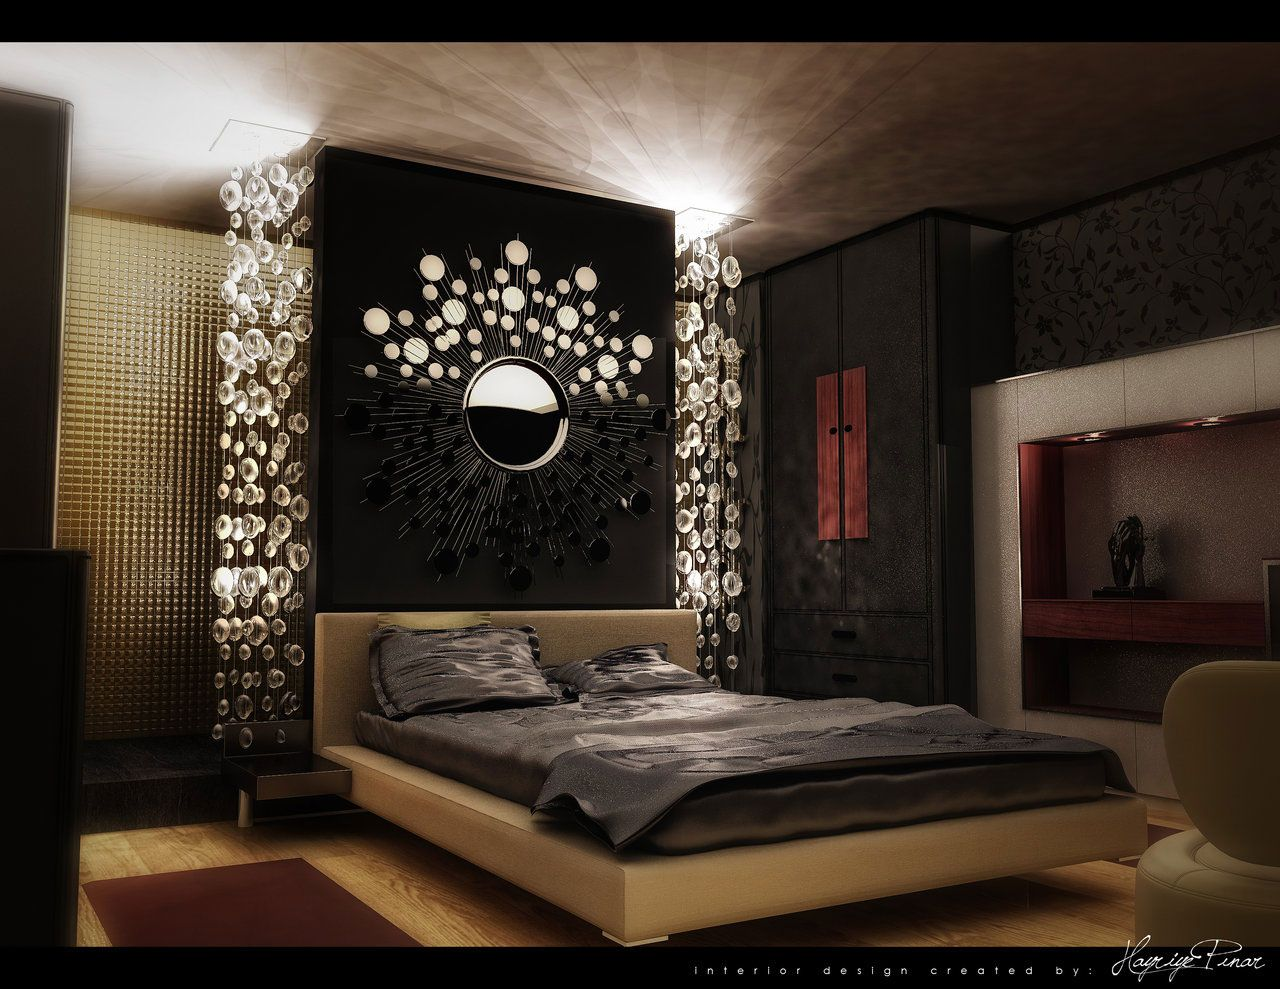 Luxury Bedrooms Design Ideas Part - 20: How To Make Your Bedroom Look Expensive - Luxury Bedroom Ideas - Http://